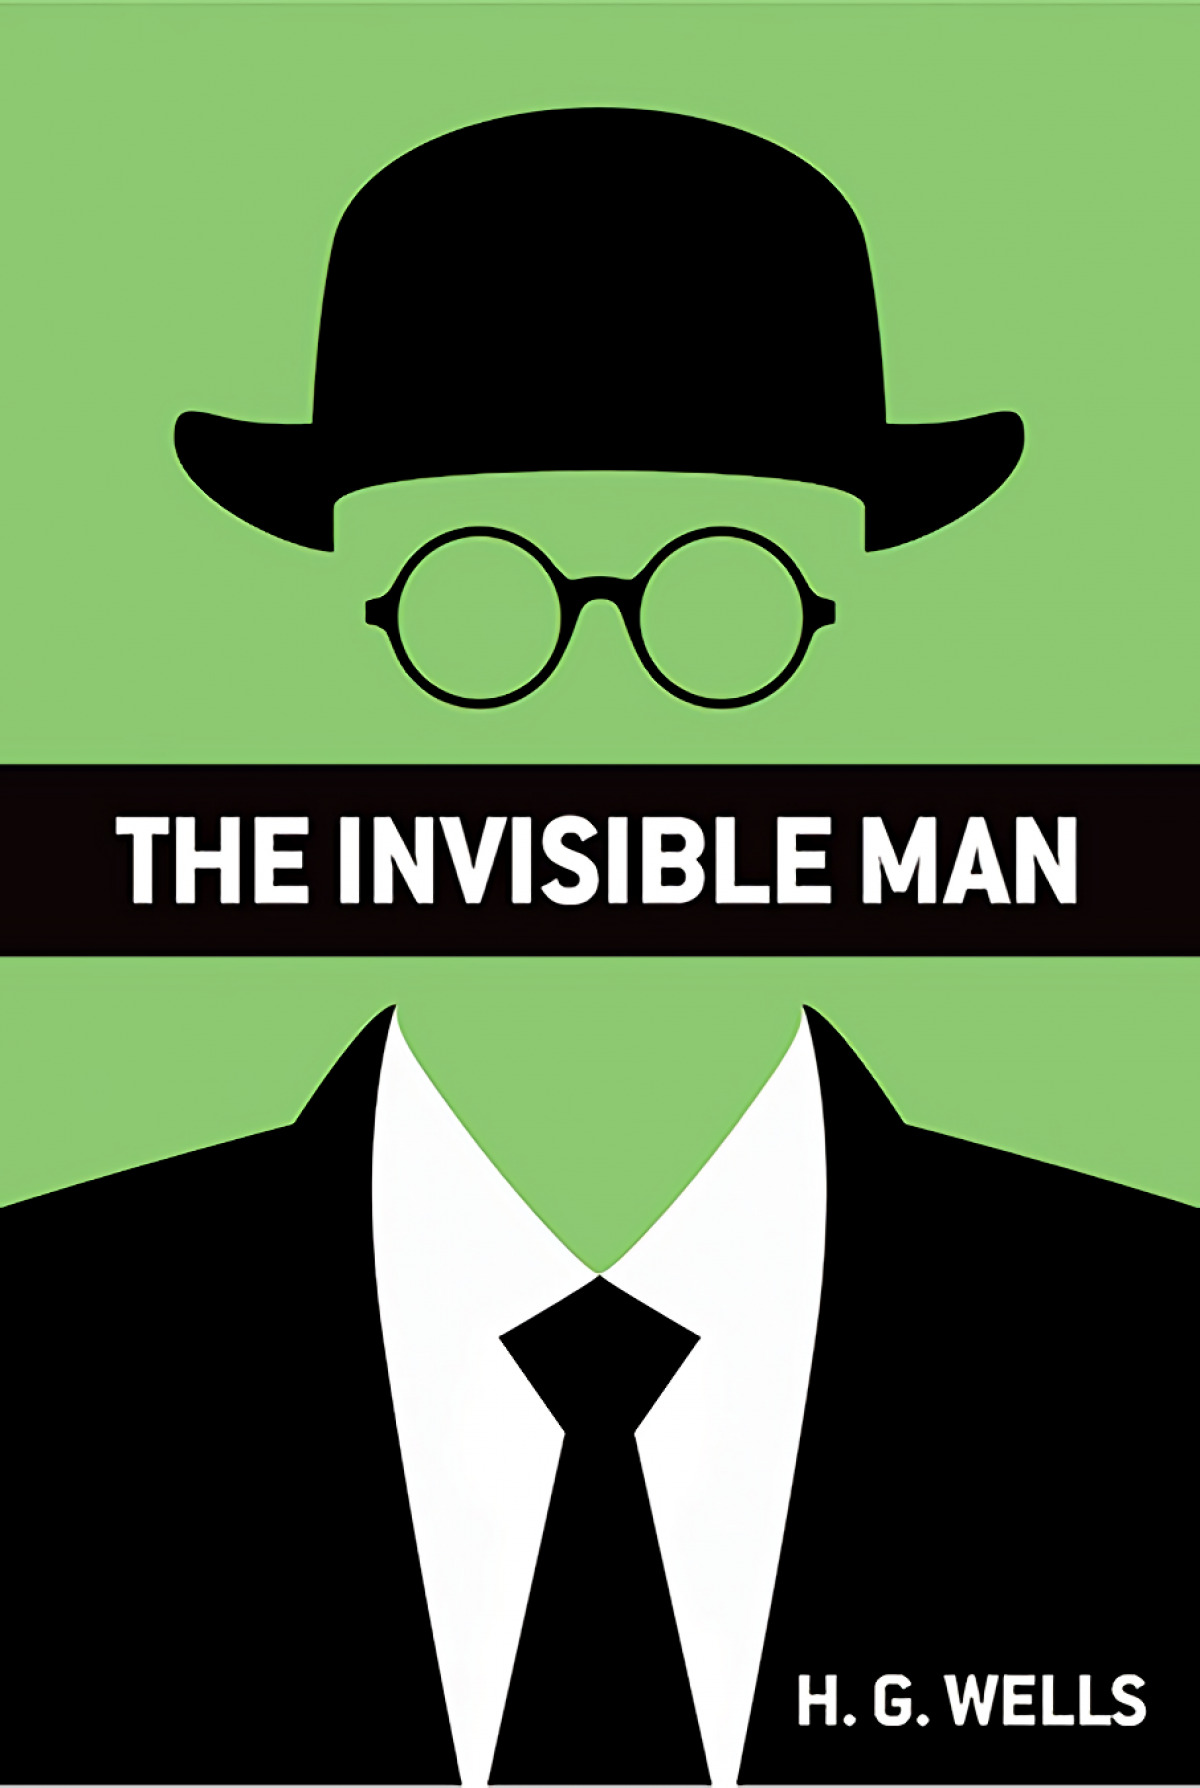 Rollercoasters: The Invisible Man: H.G. Wells